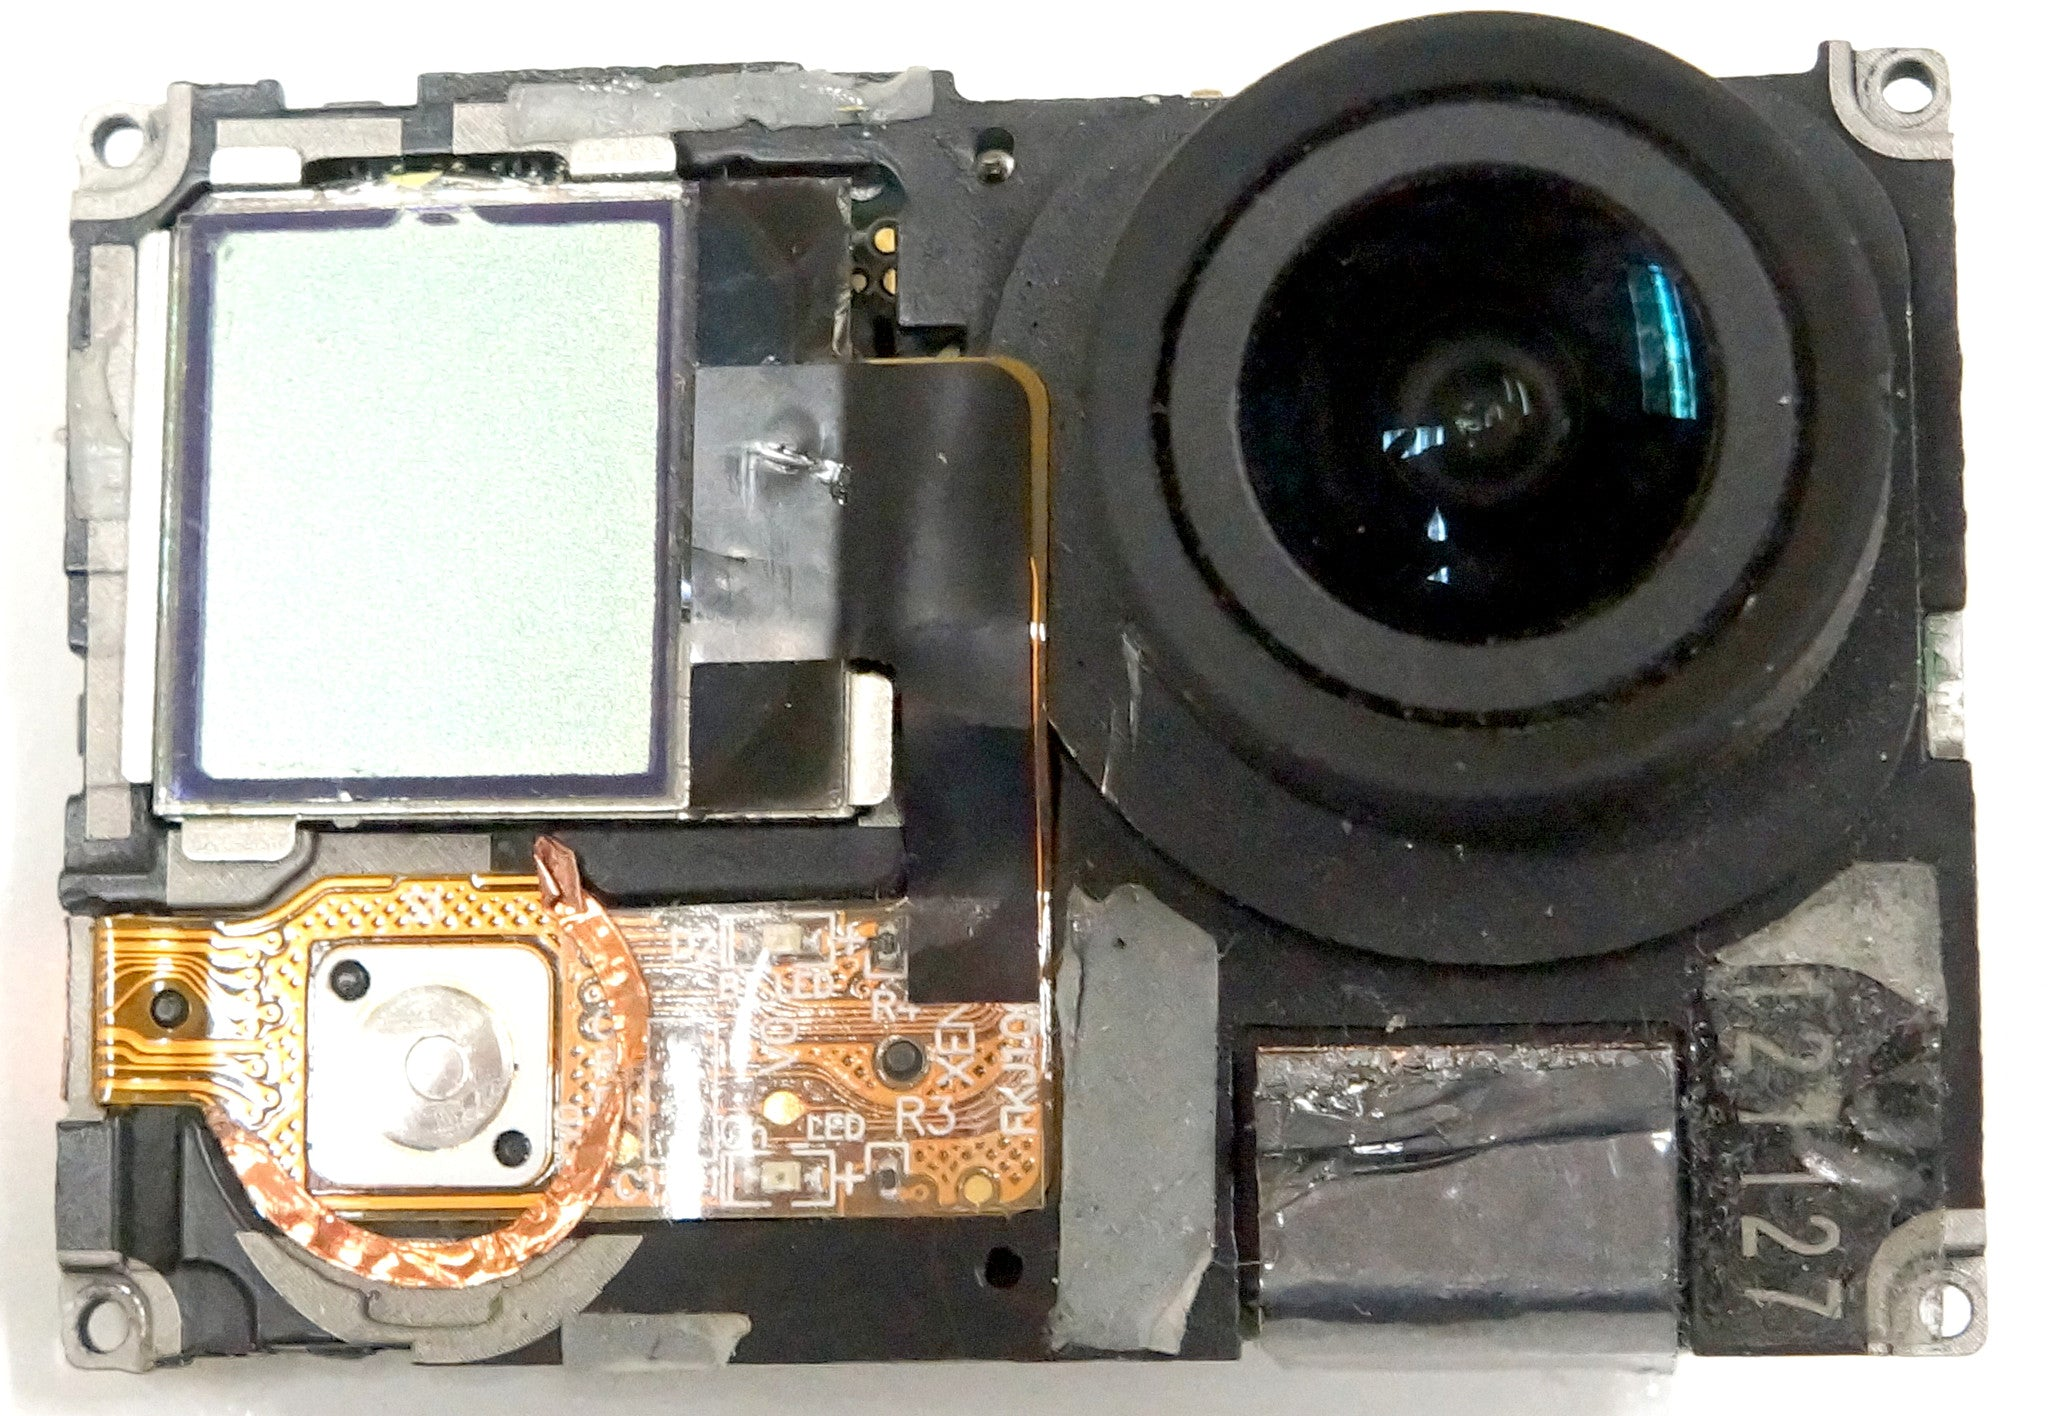 GoPro Hero 3 Silver<br/>Assembly